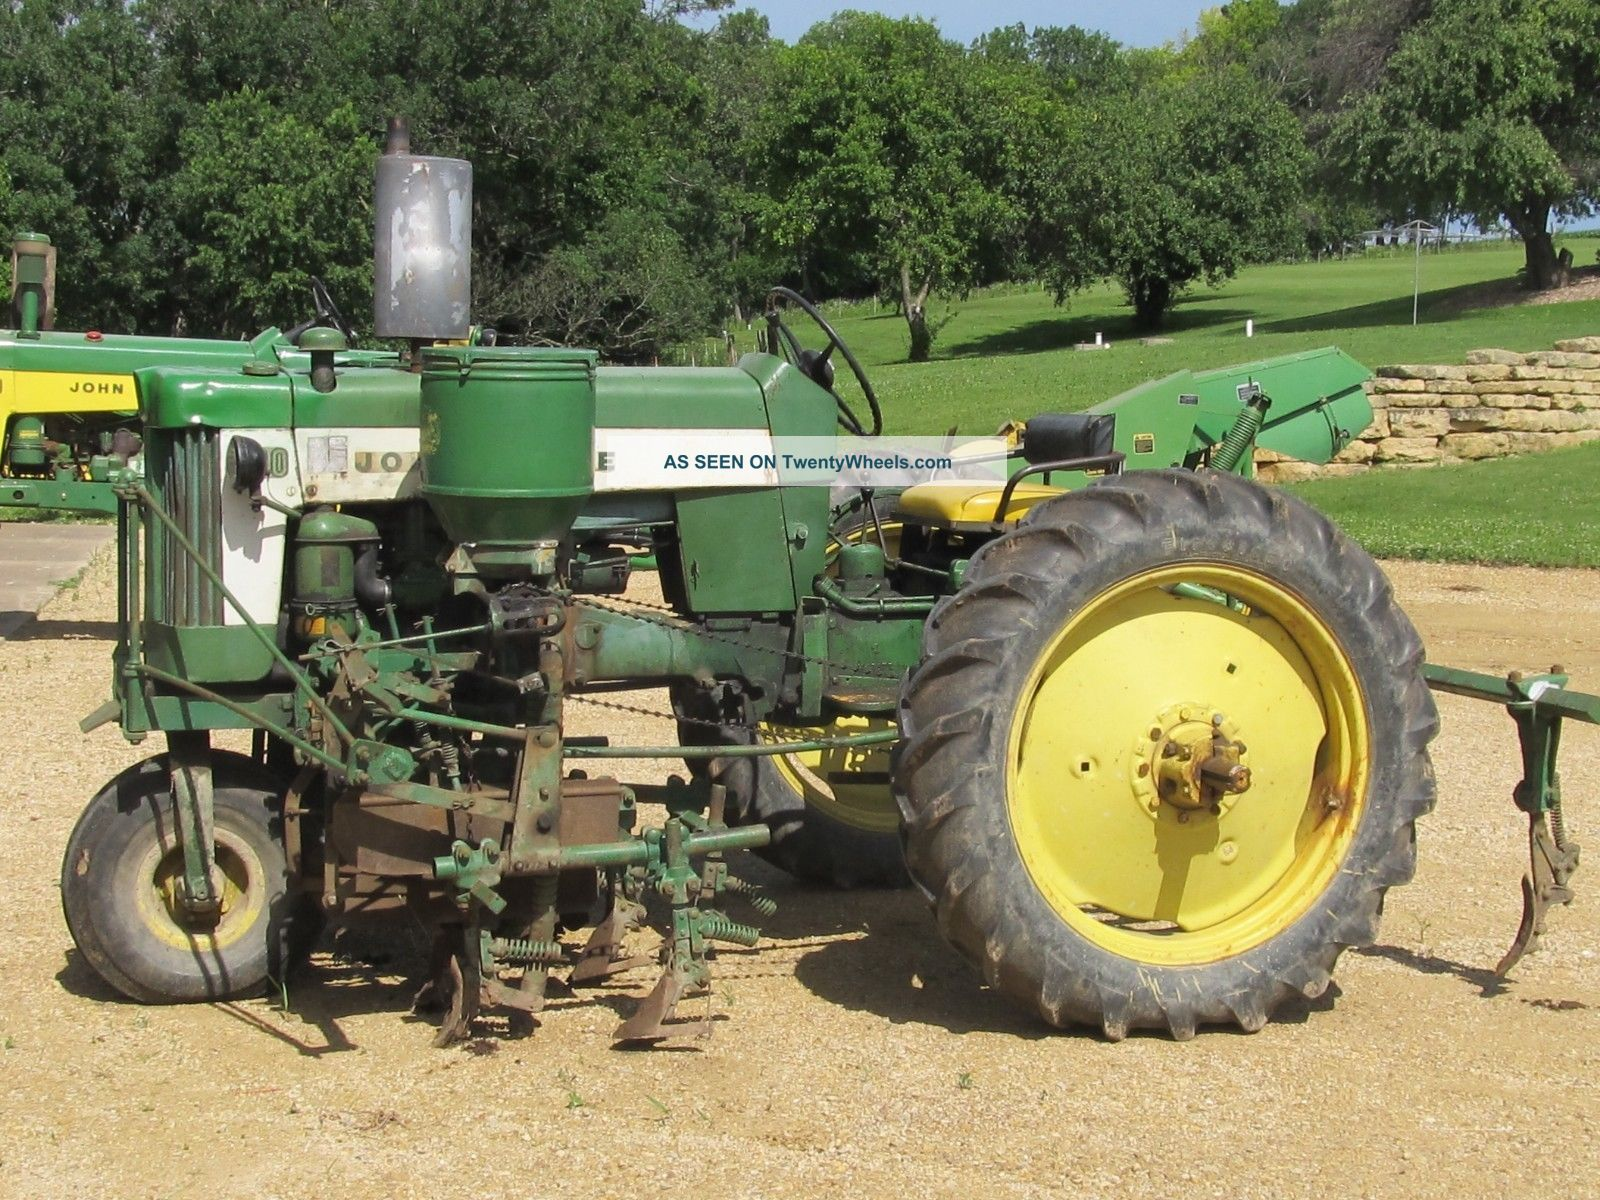 John Deere 430 Cultivator W/ Fertilizer Side Dresser 3 ...